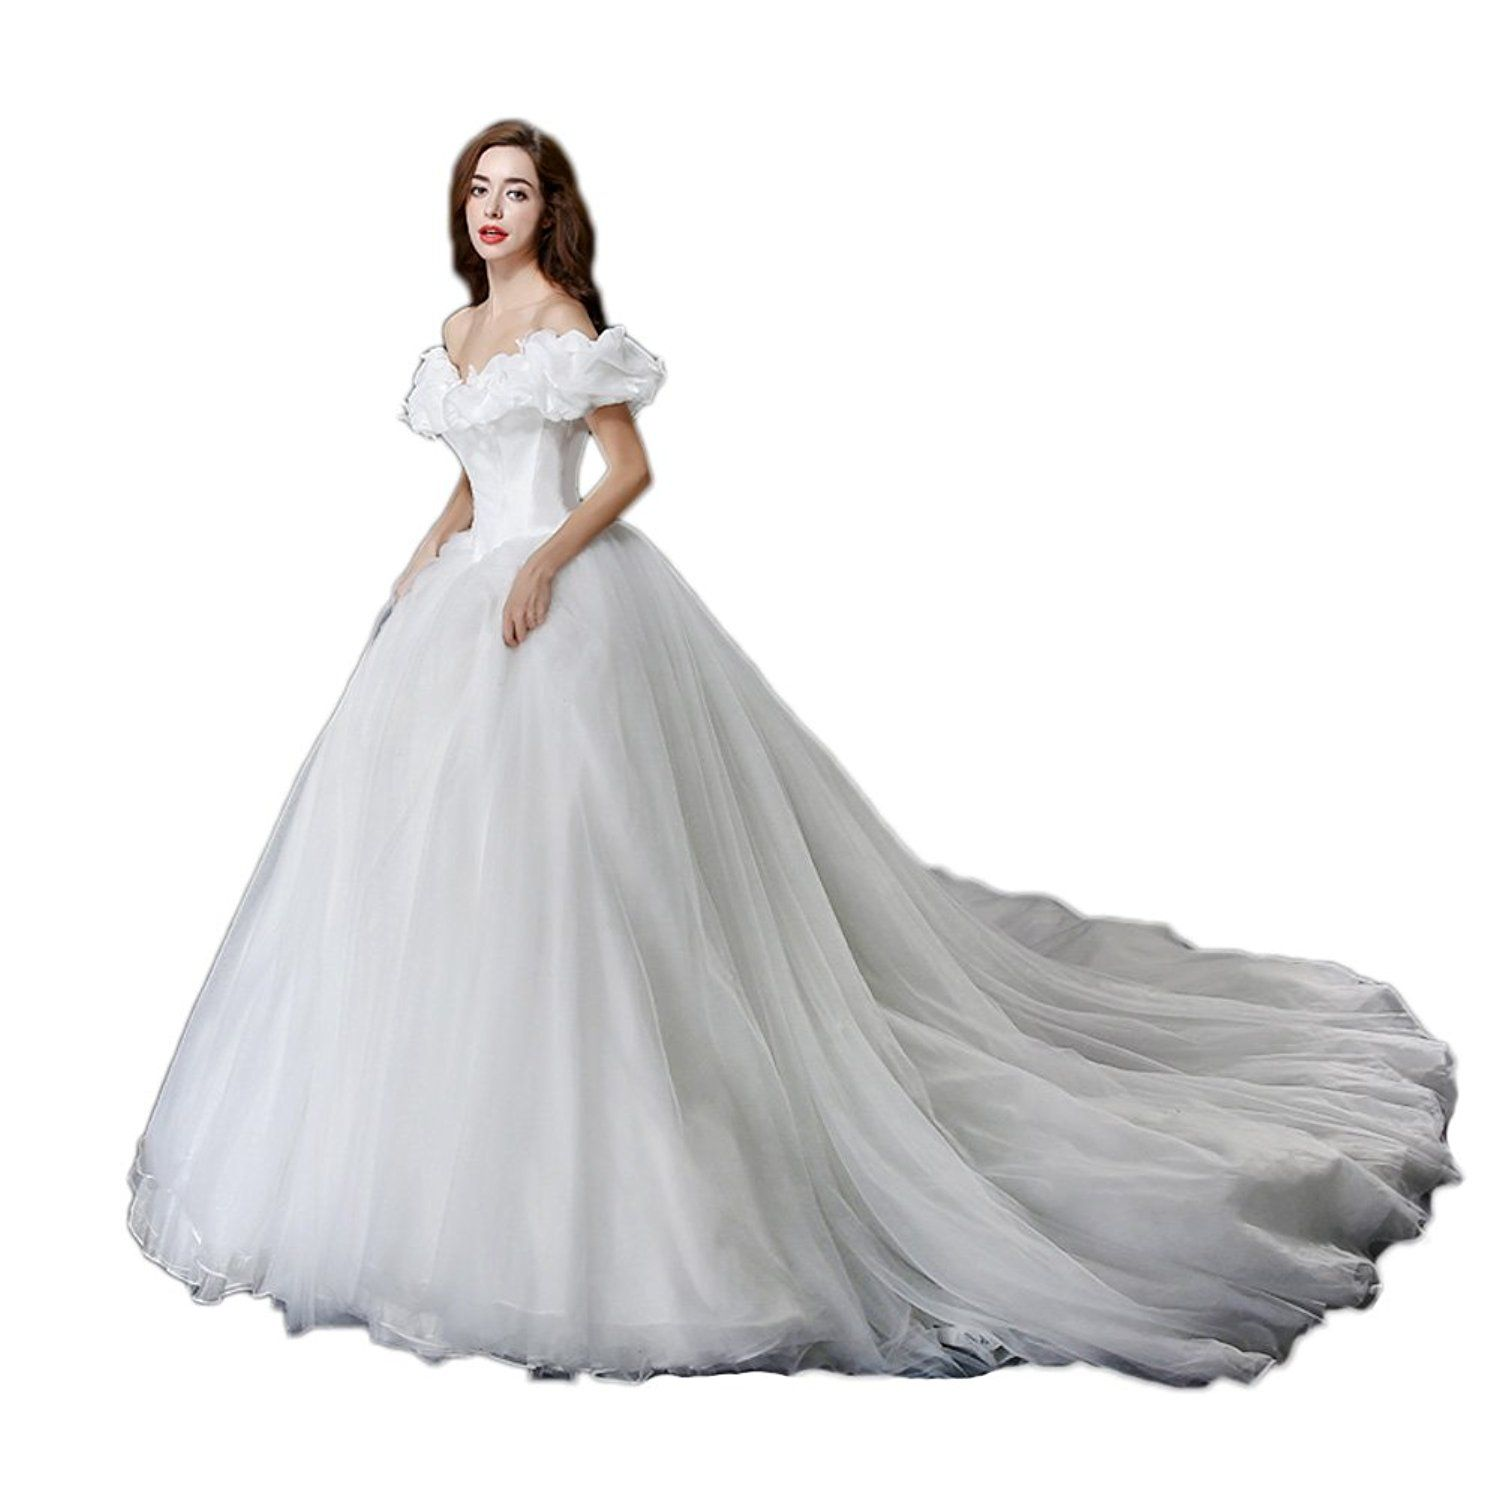 Aurora Bridal Women's Ball Gown Princess Cinderella Quinceanera Wedding Dress See This Awesome Image Dresses: Princess Aurora Wedding Dresses At Reisefeber.org